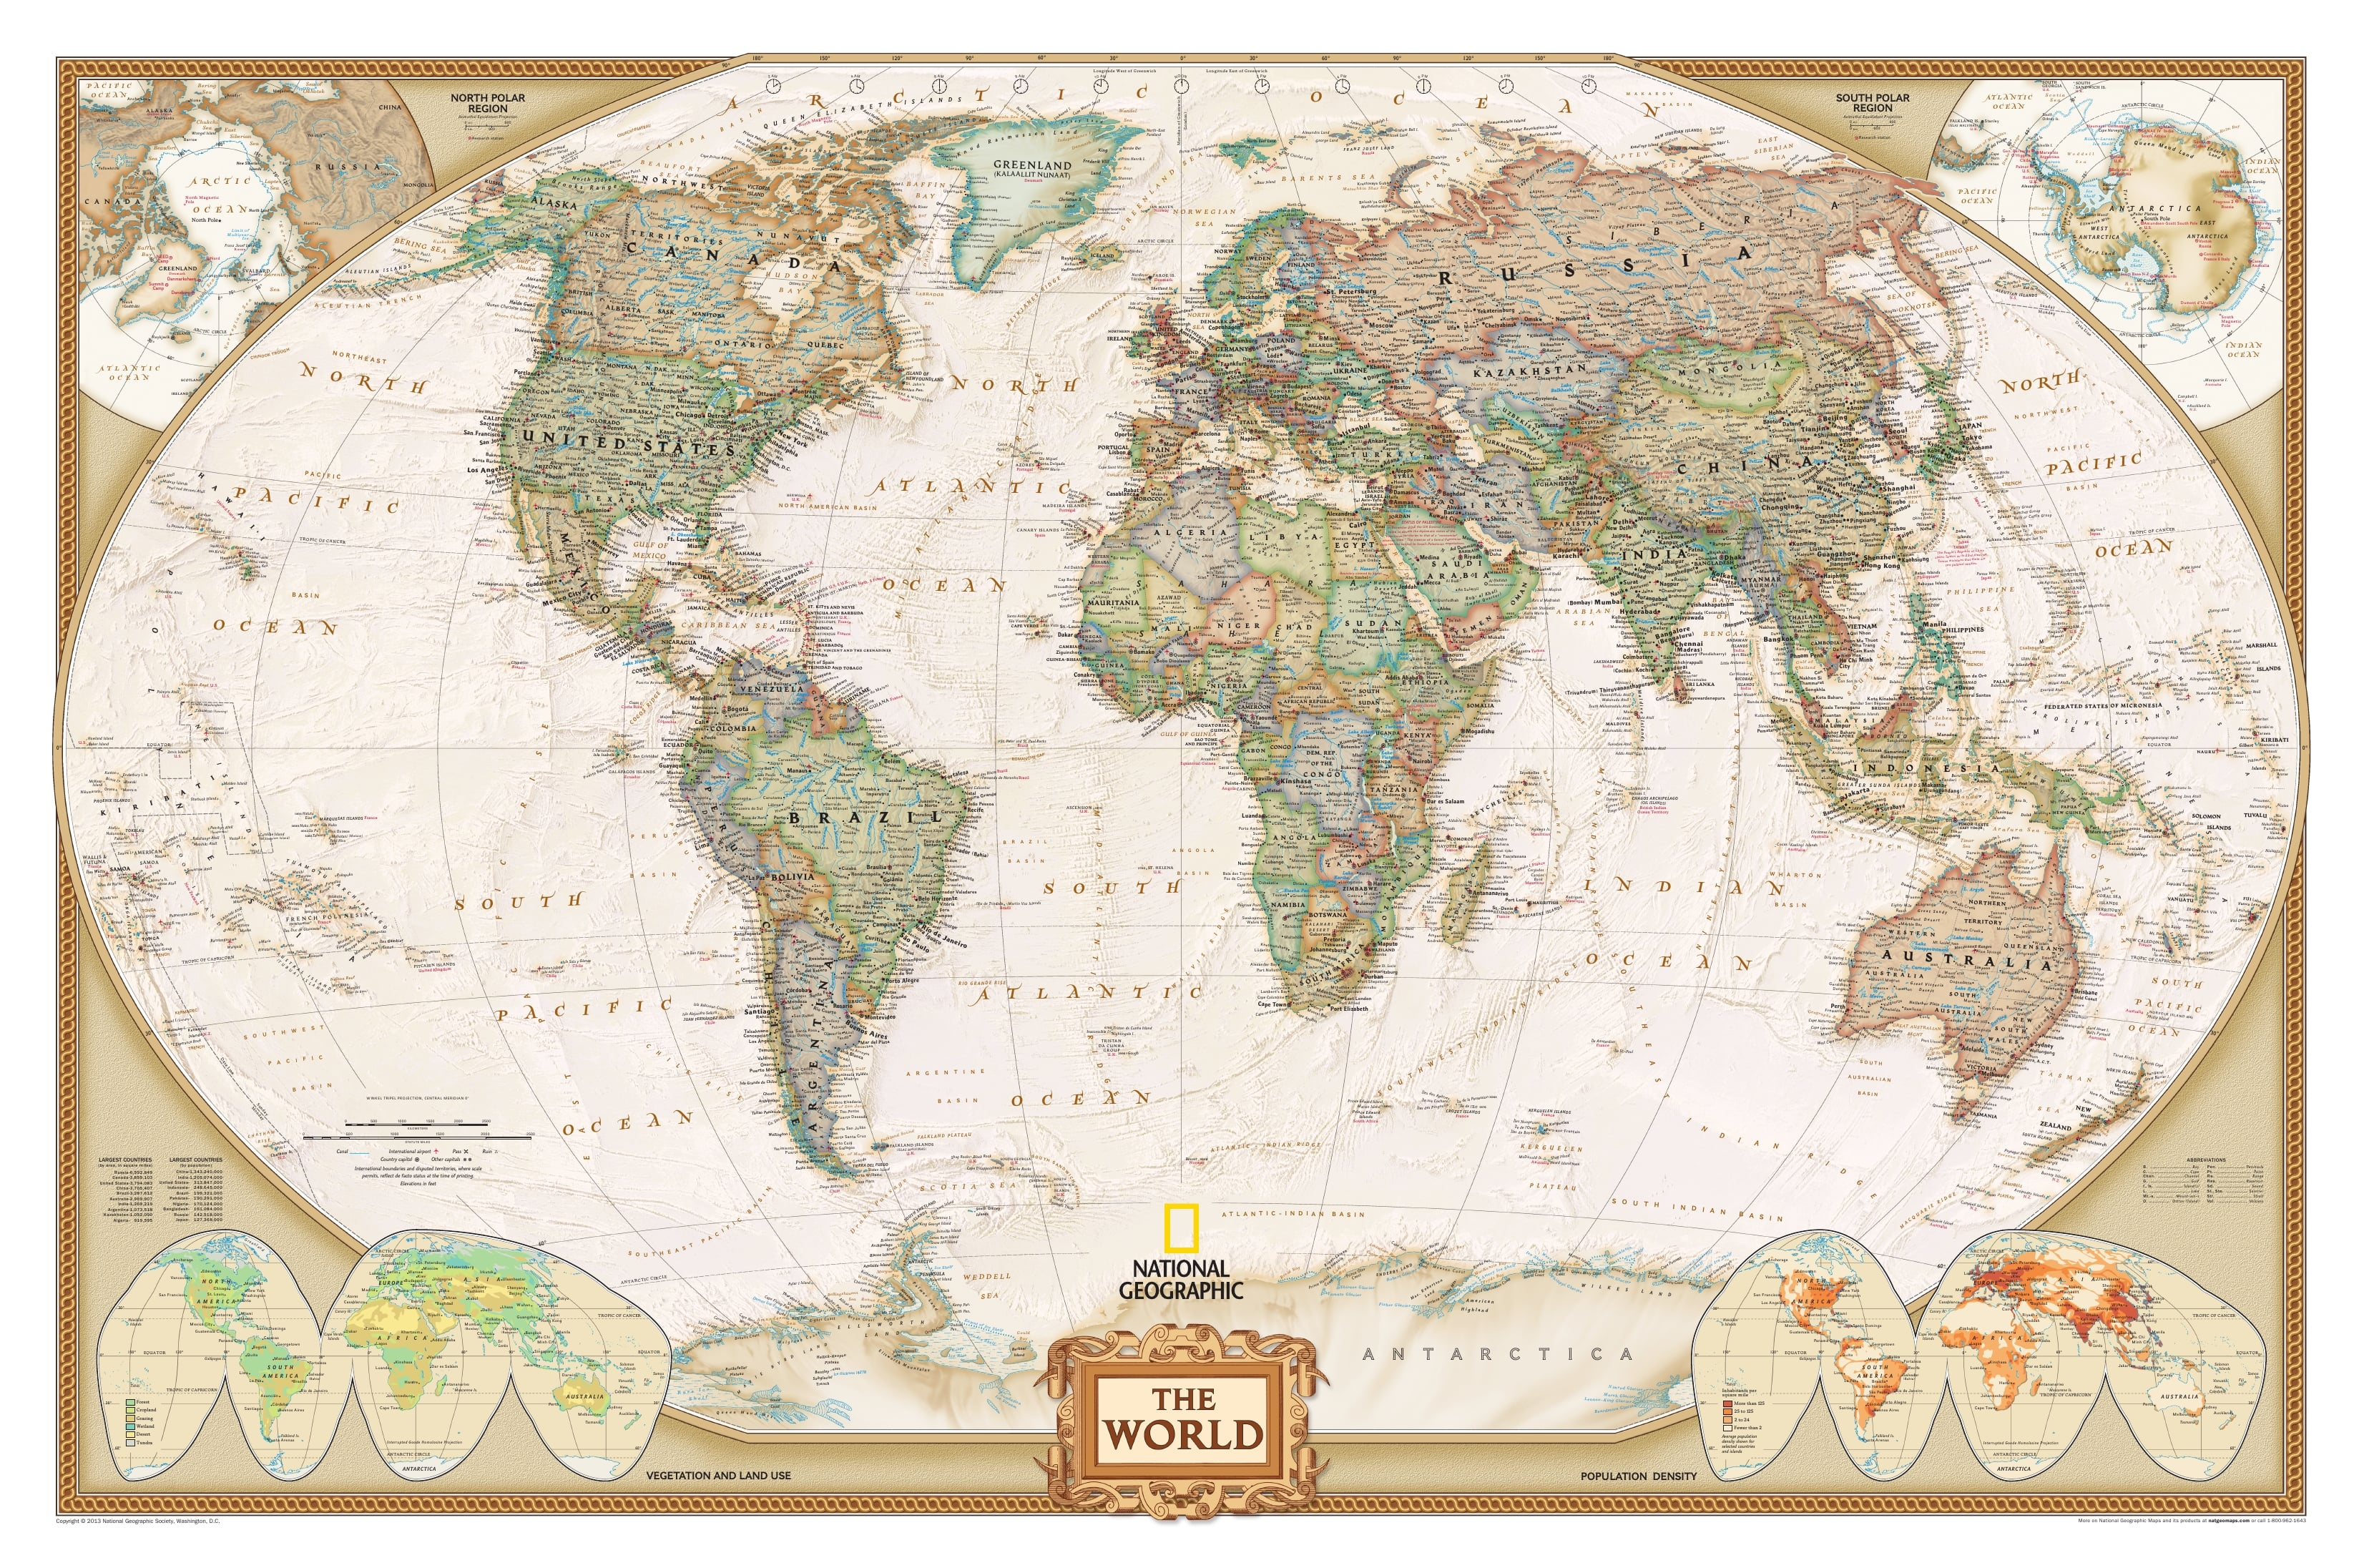 English Map Of The World.World Map Executive English Antique Style As Wallpaper